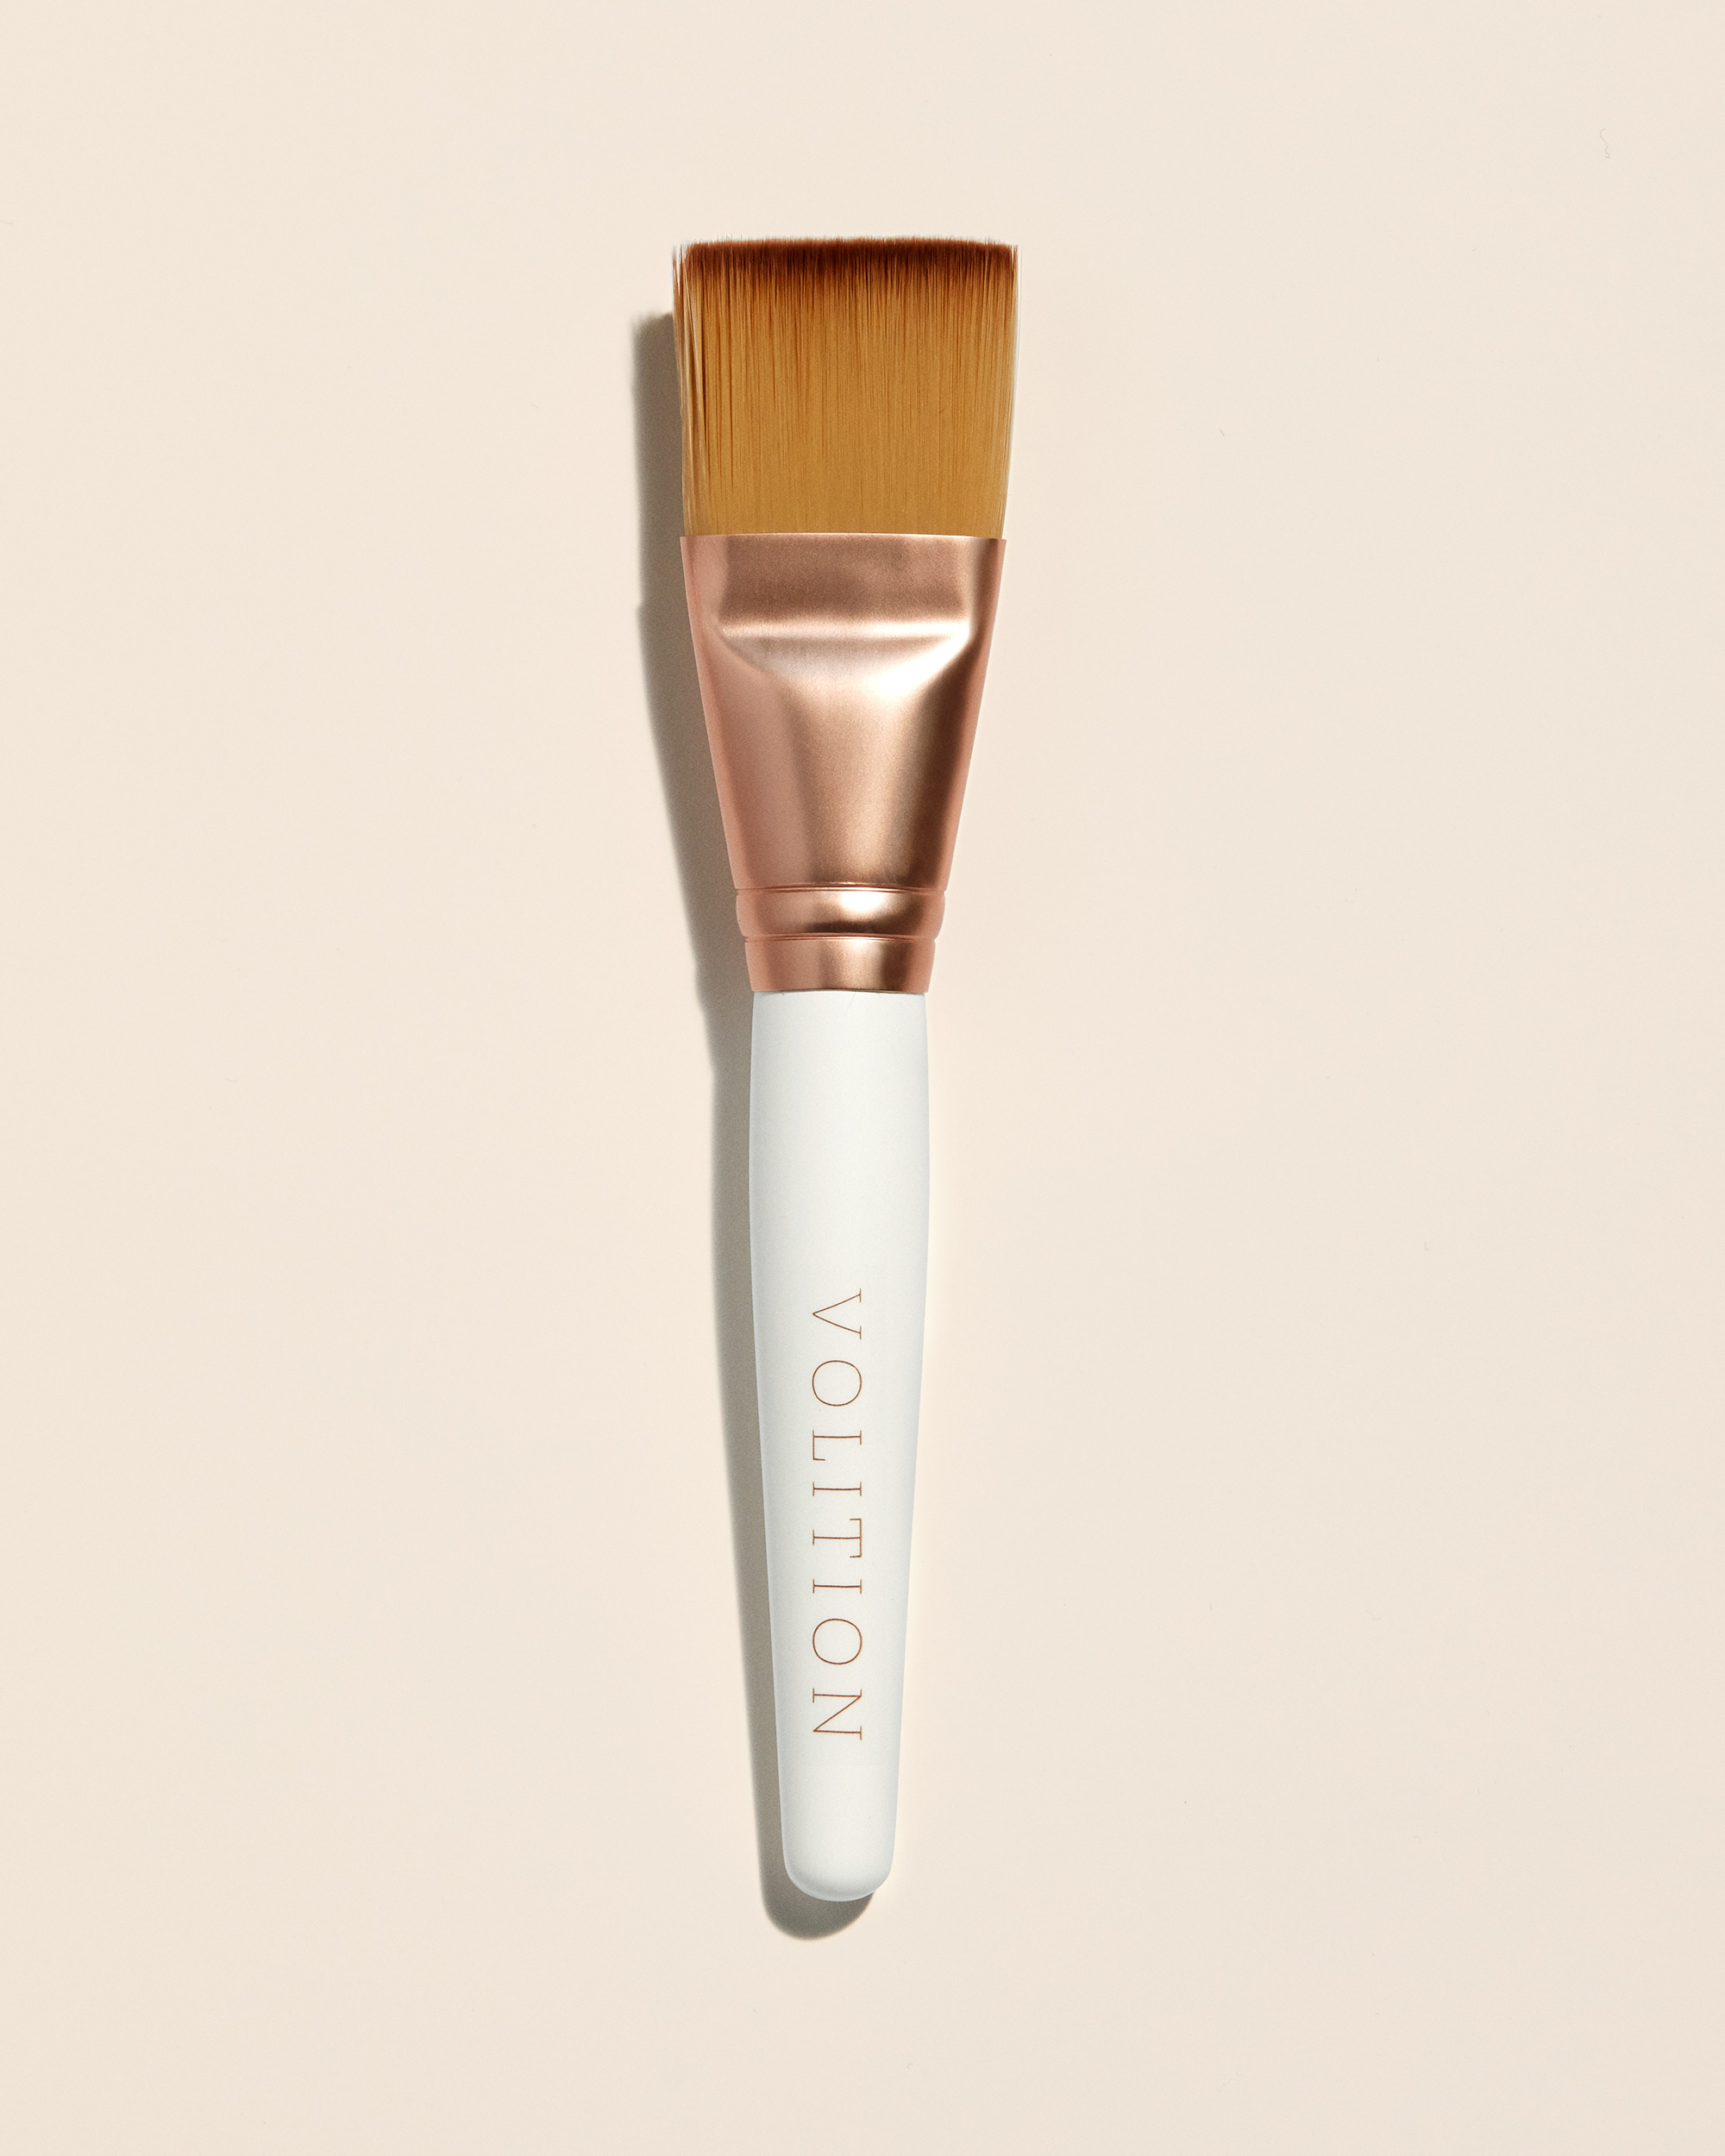 015_TheSkincareBrush_0342